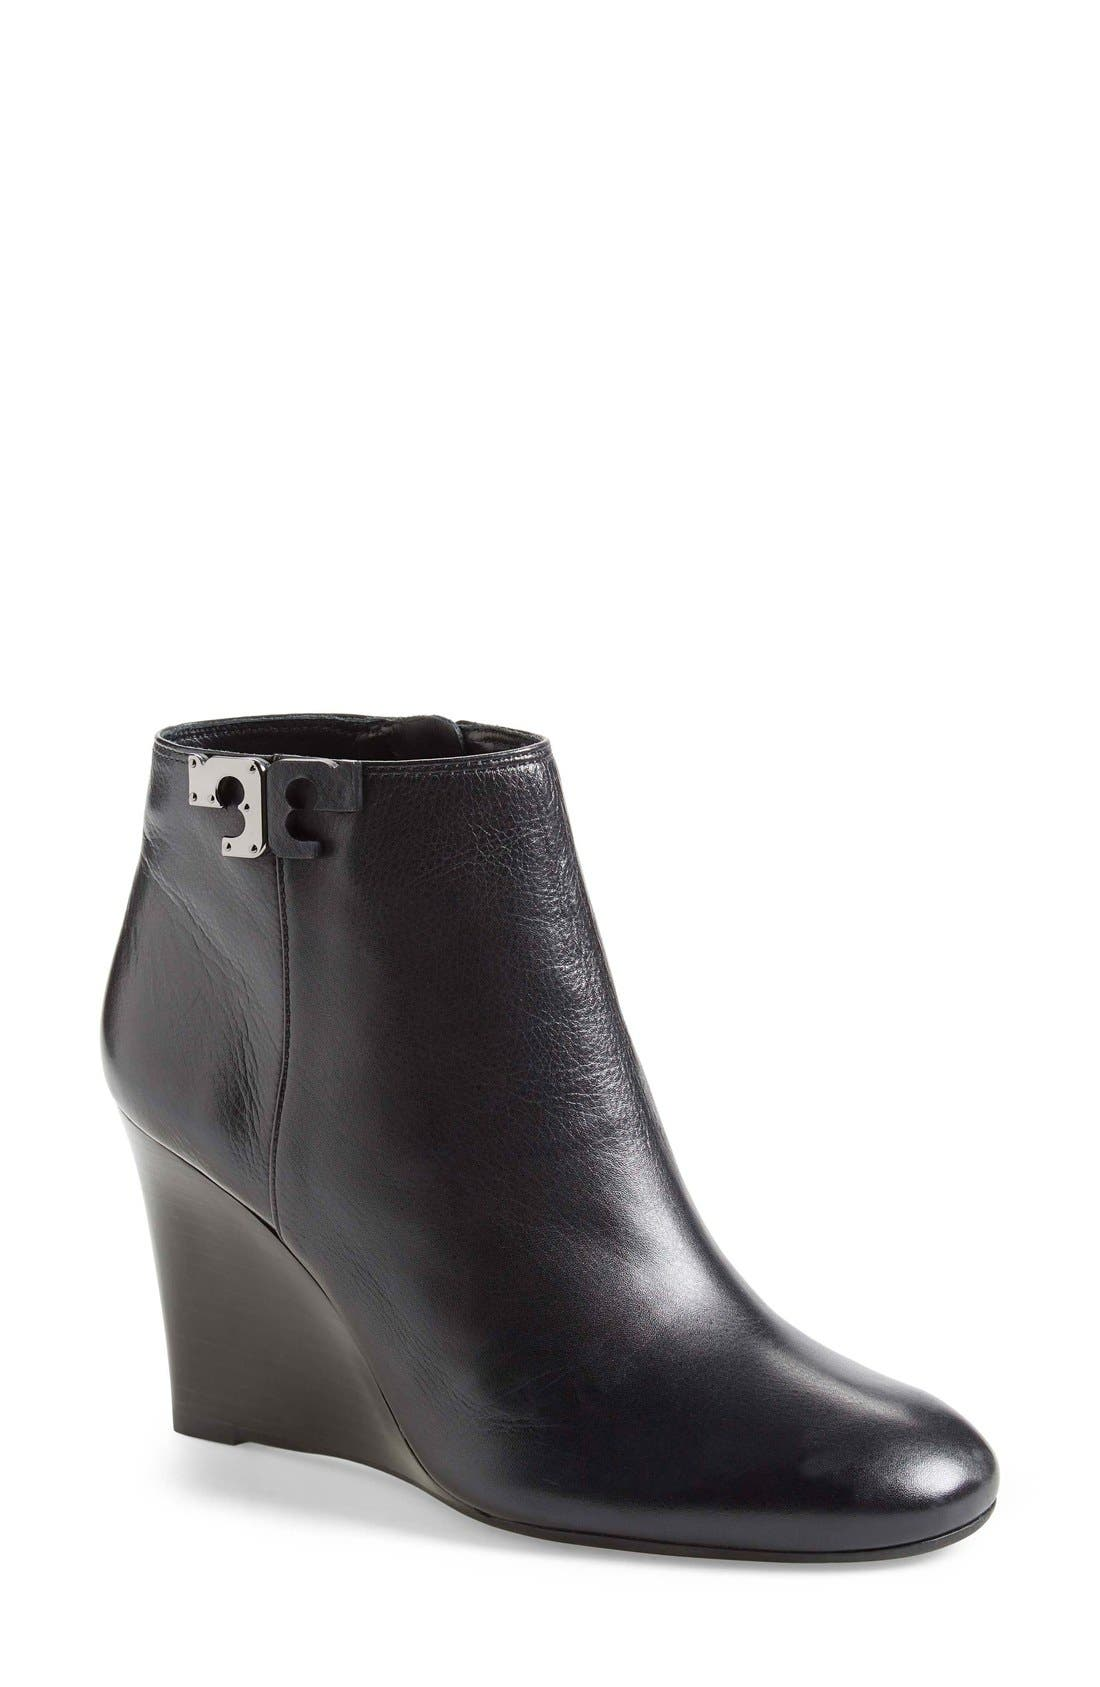 'Lowell' Wedge Bootie,                         Main,                         color, 001